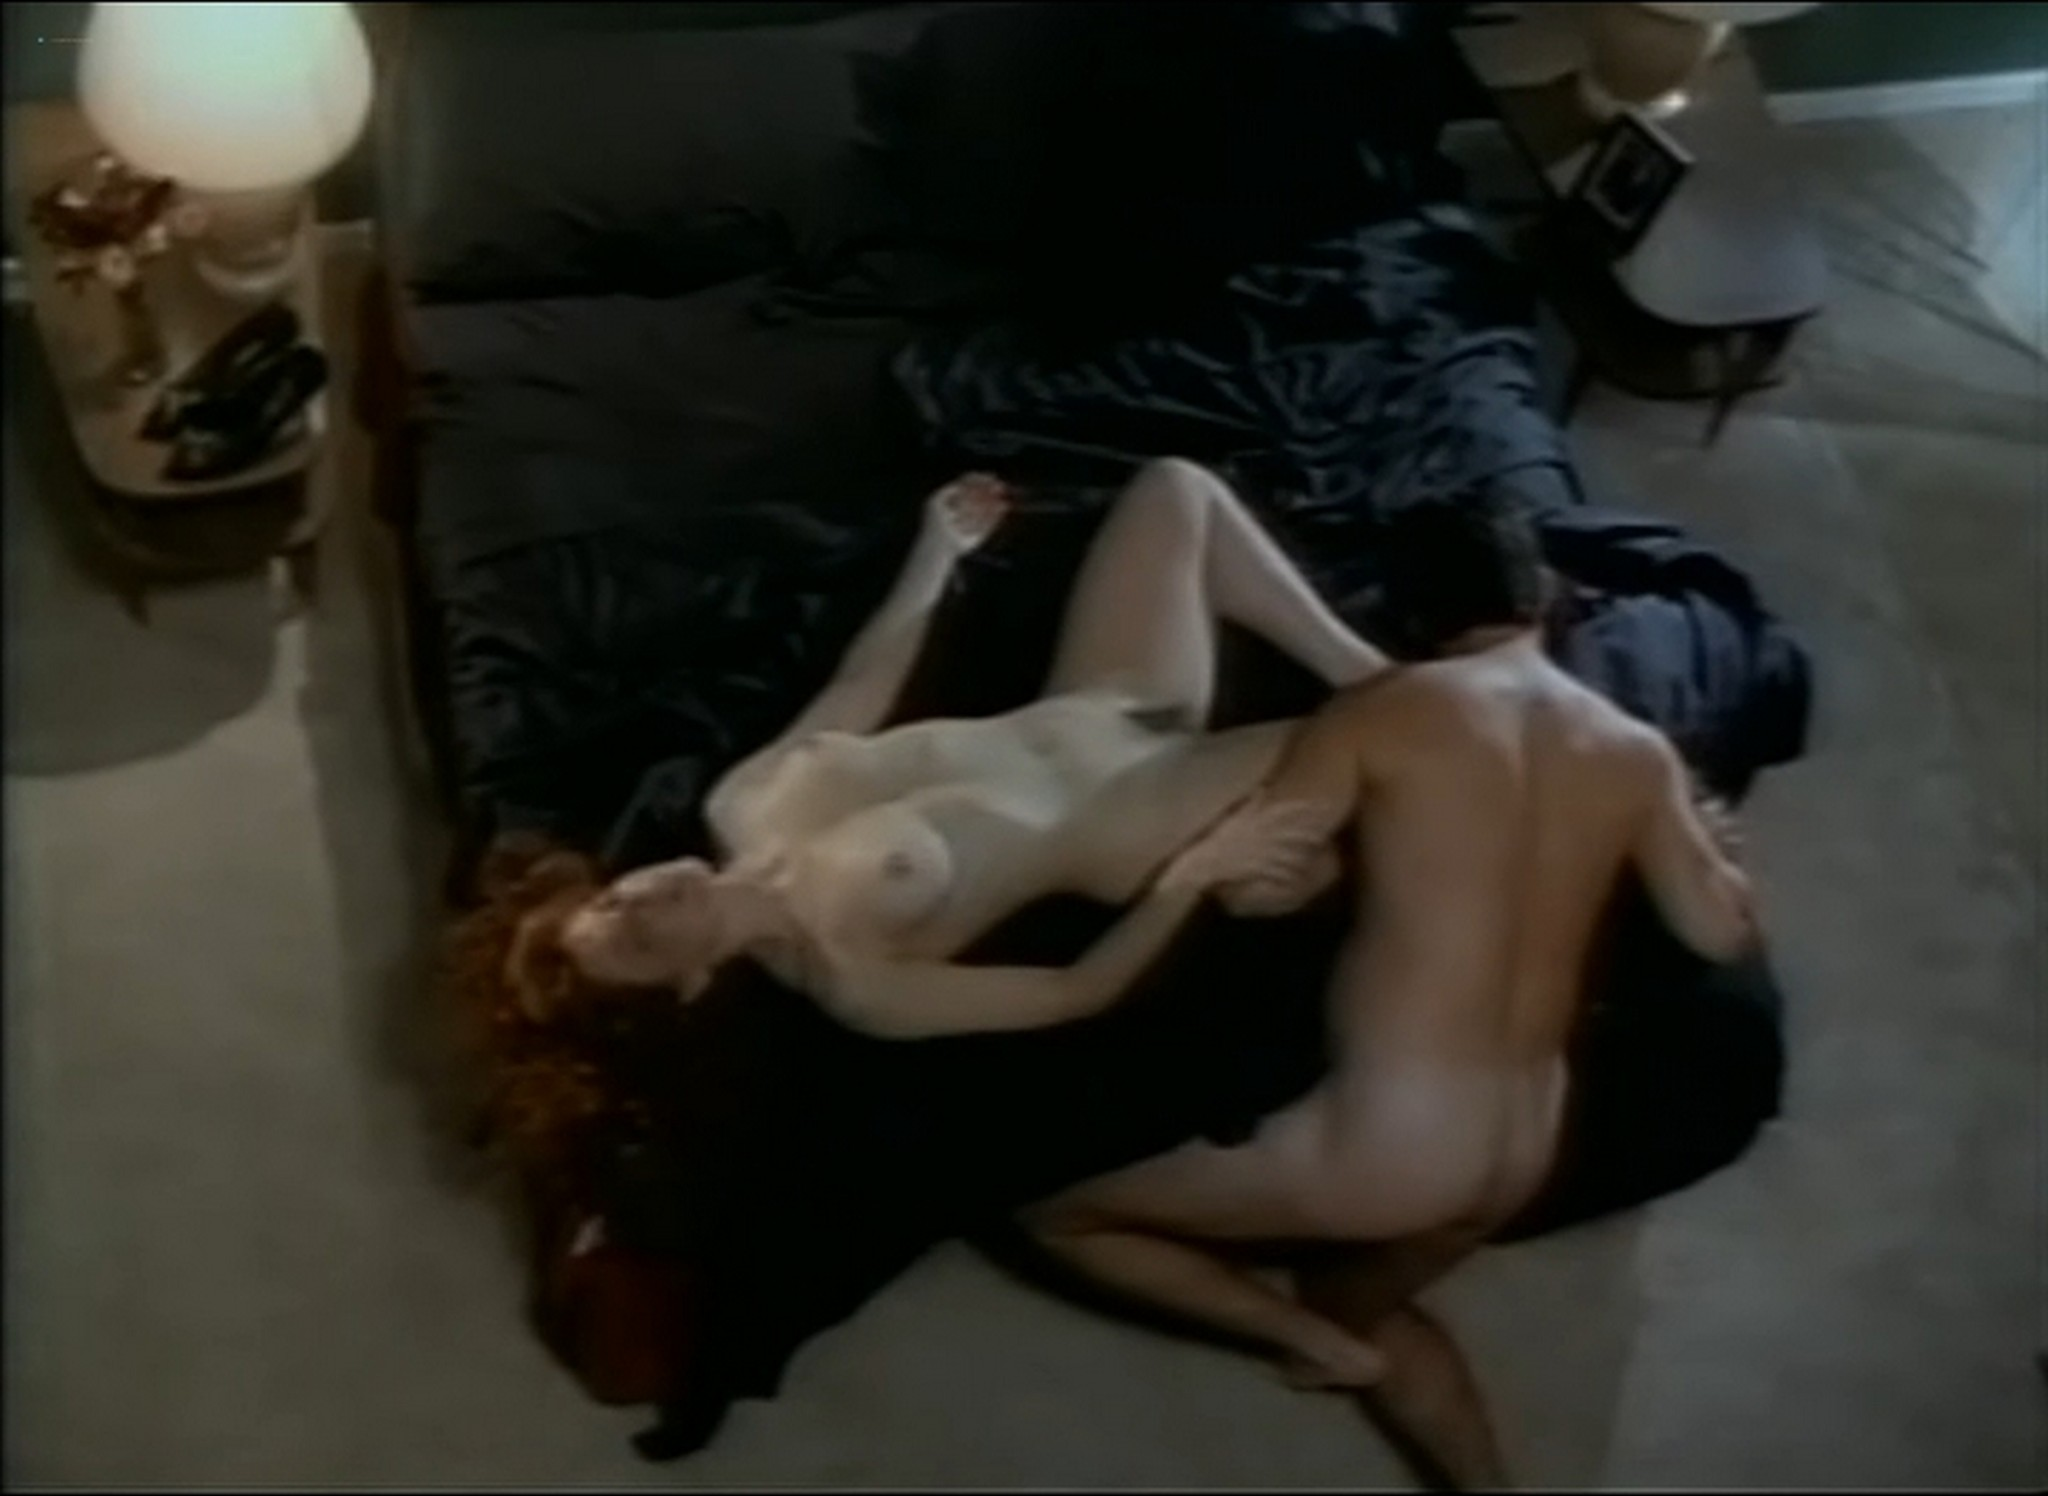 Debra K Beatty nude full frontal Kelly Jaye and others nude too Anthonys Desire 1993 TVRip 14